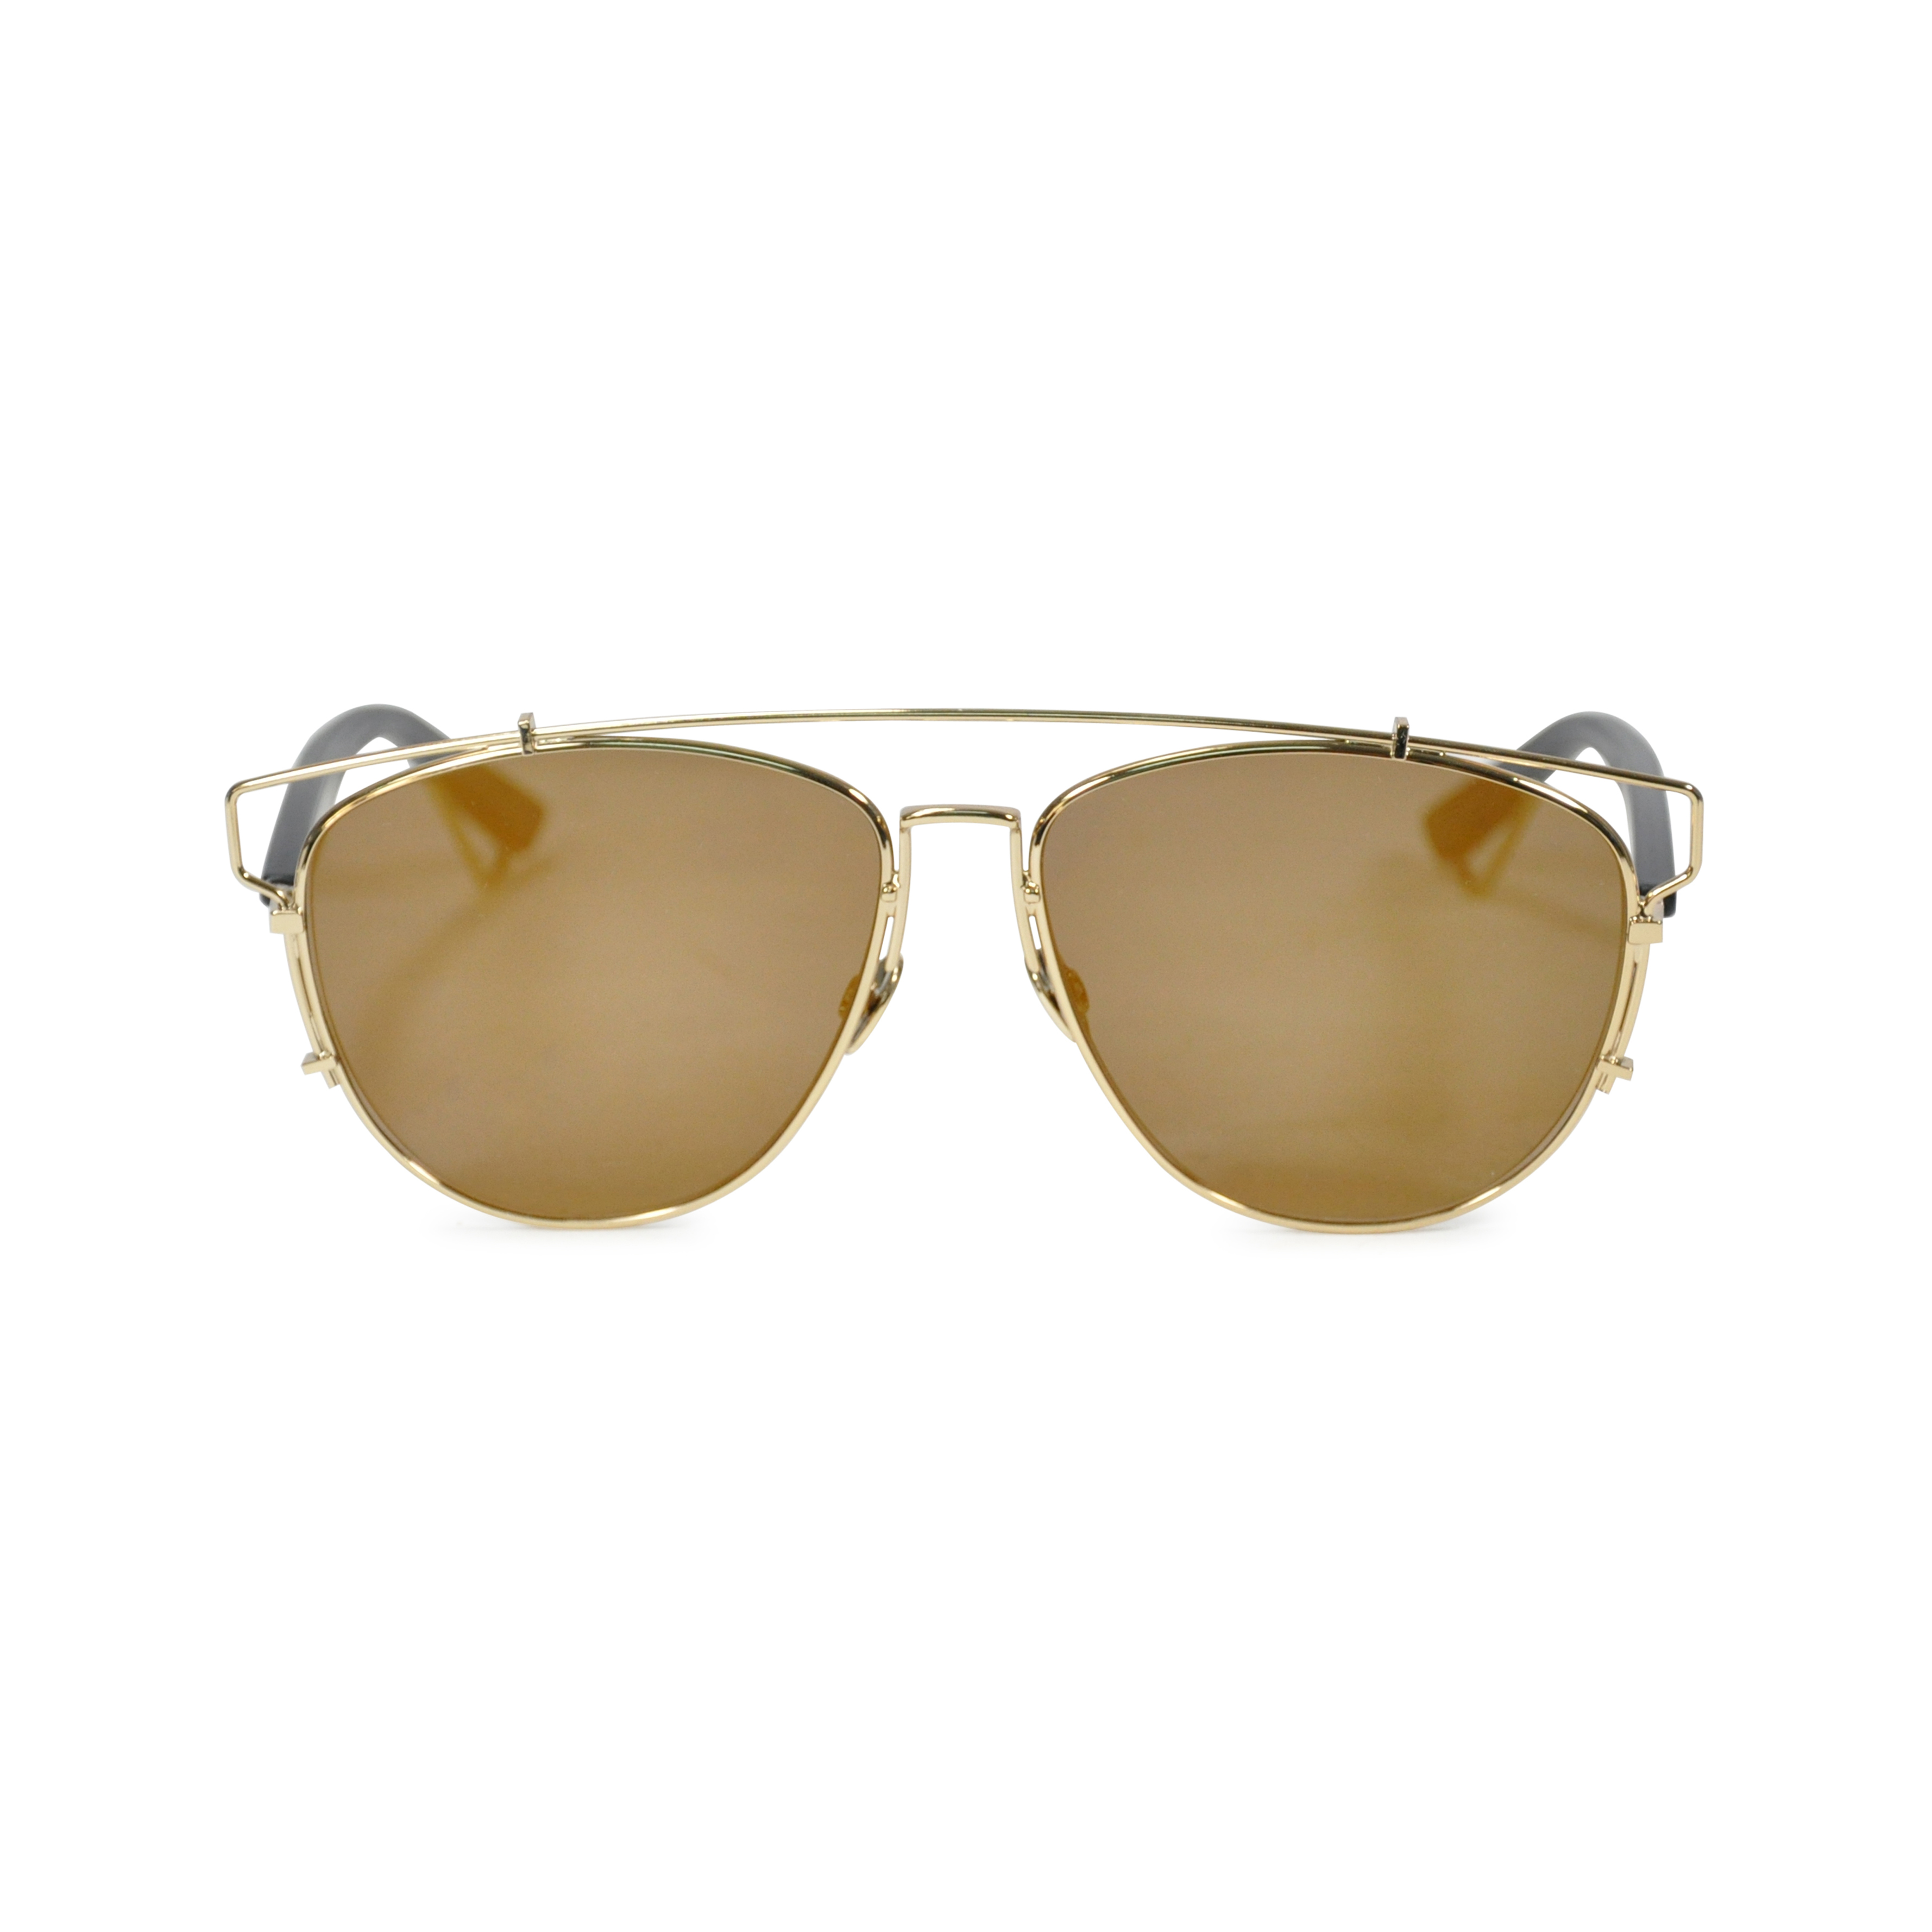 a582c300b73 Authentic Second Hand Christian Dior Technologic Aviator Style Sunglasses  (PSS-223-00001)